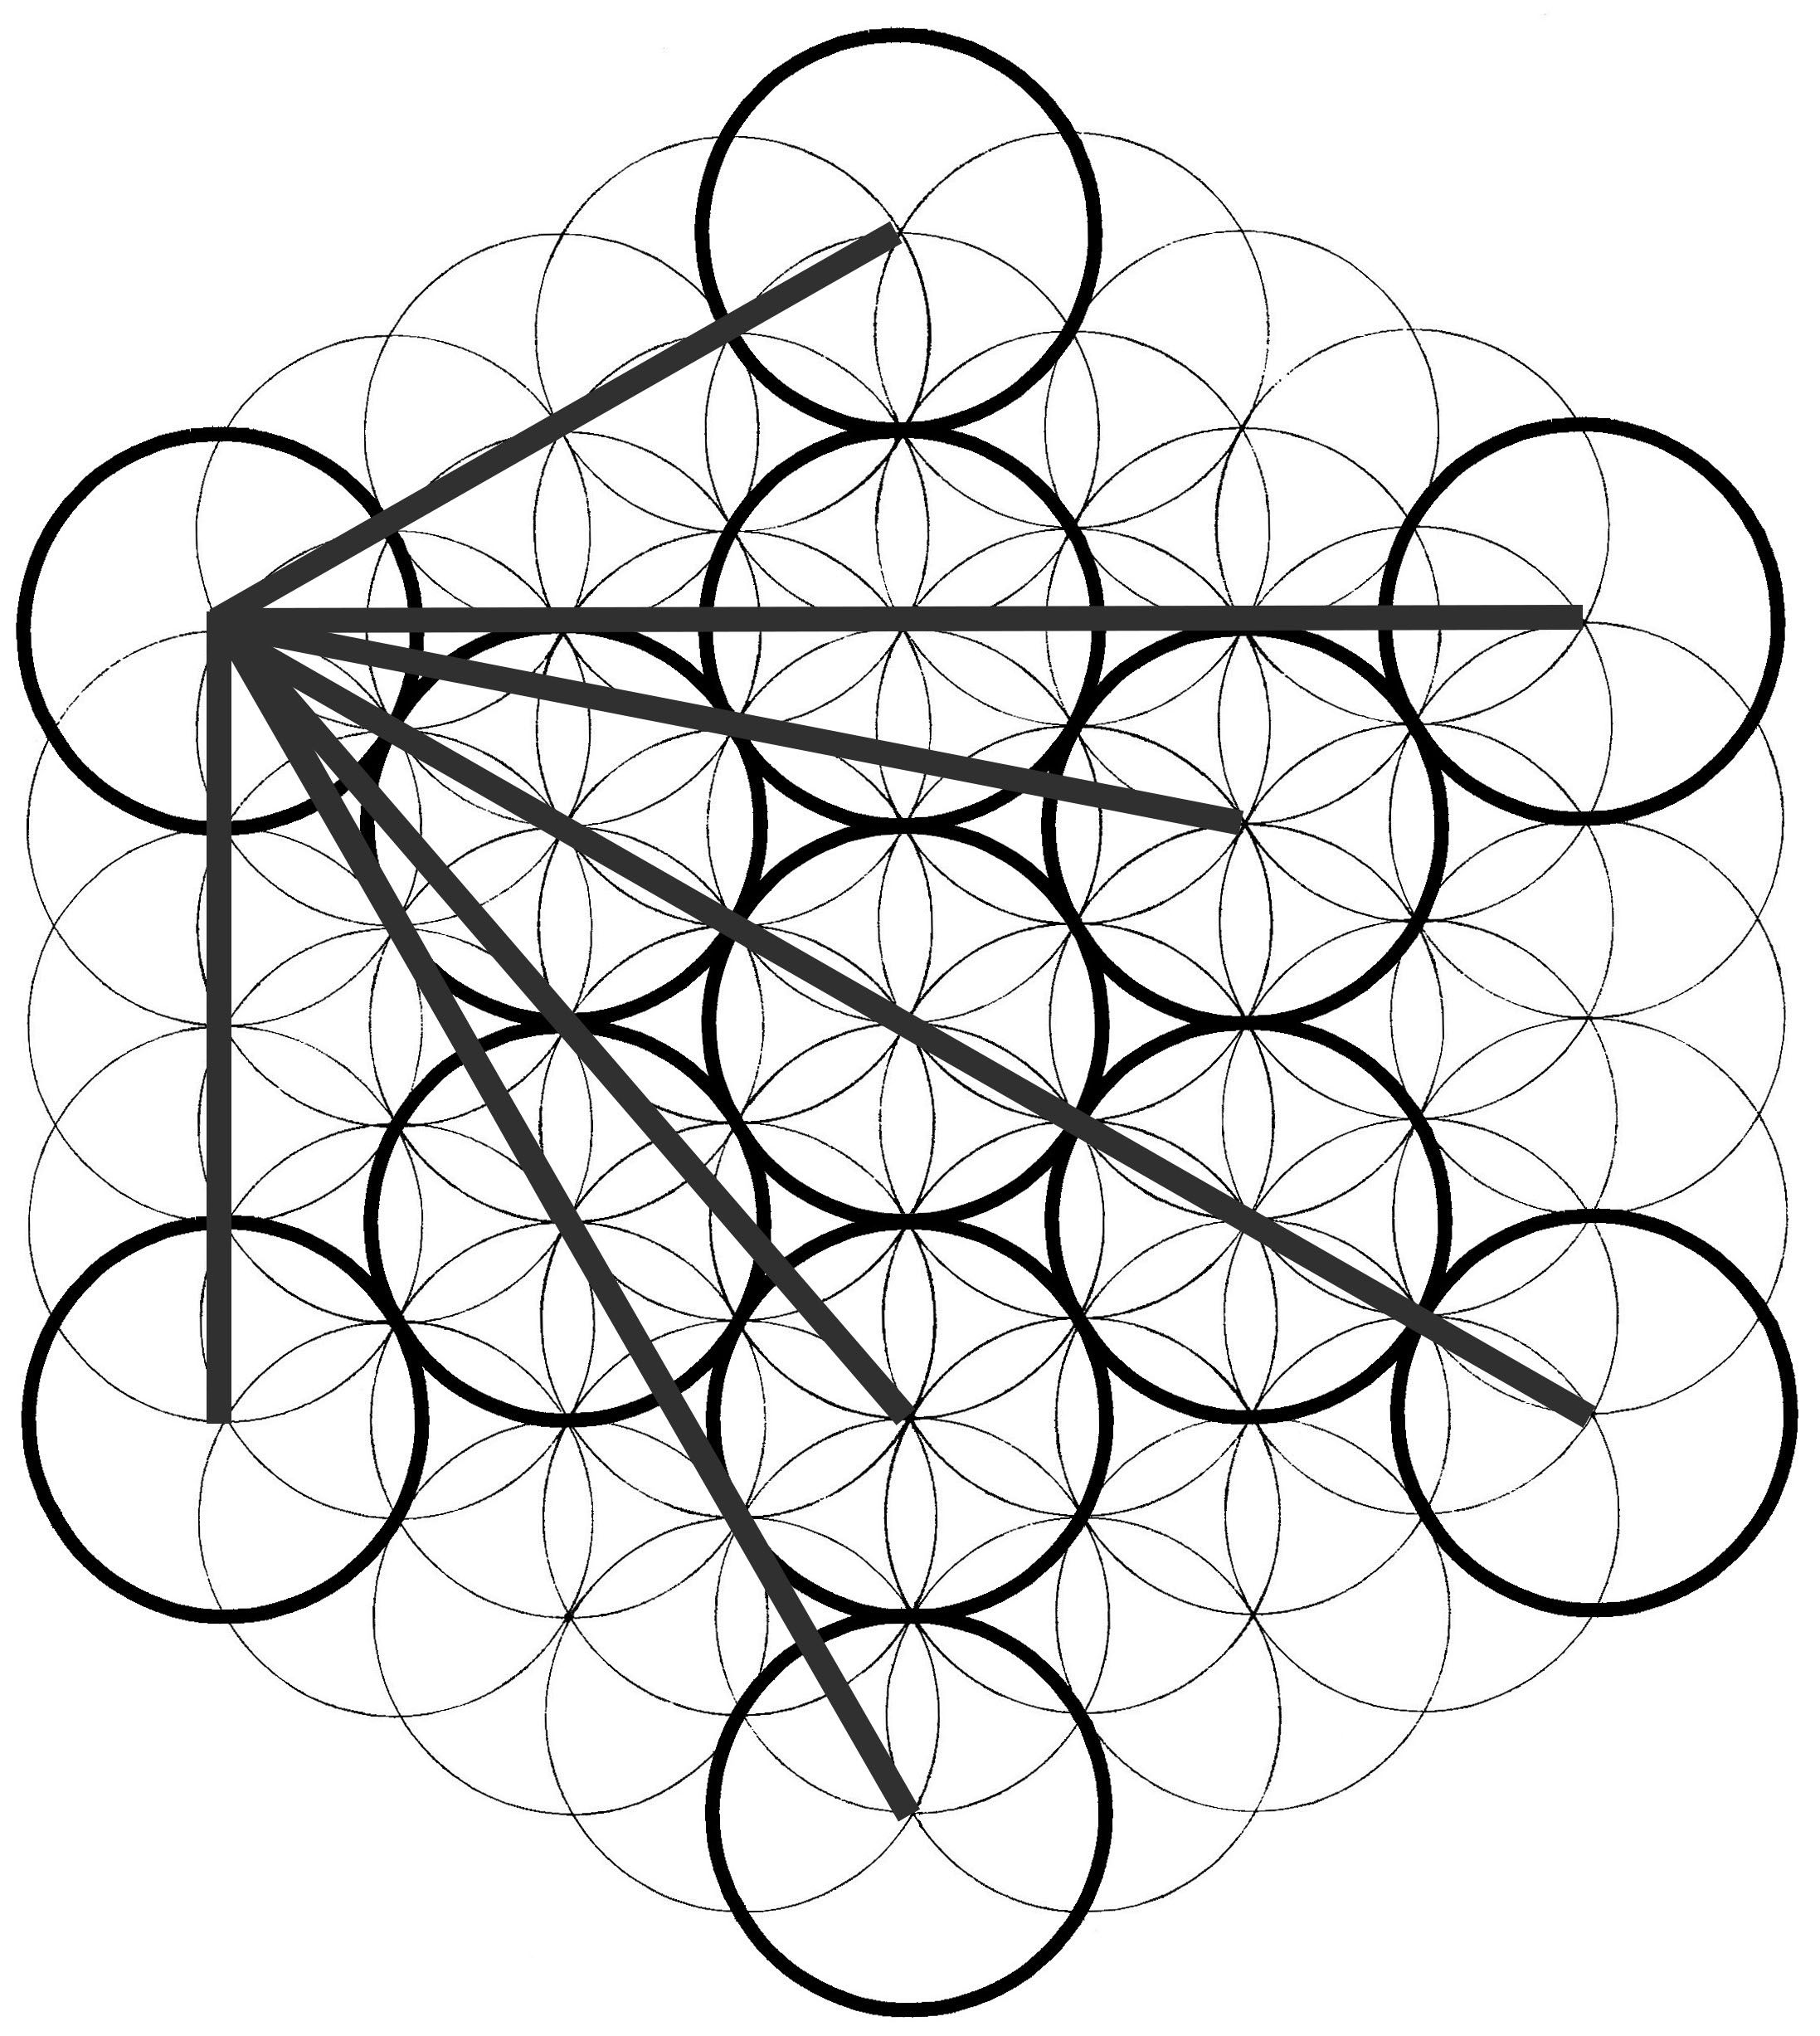 Metatron S Cube How To Draw It